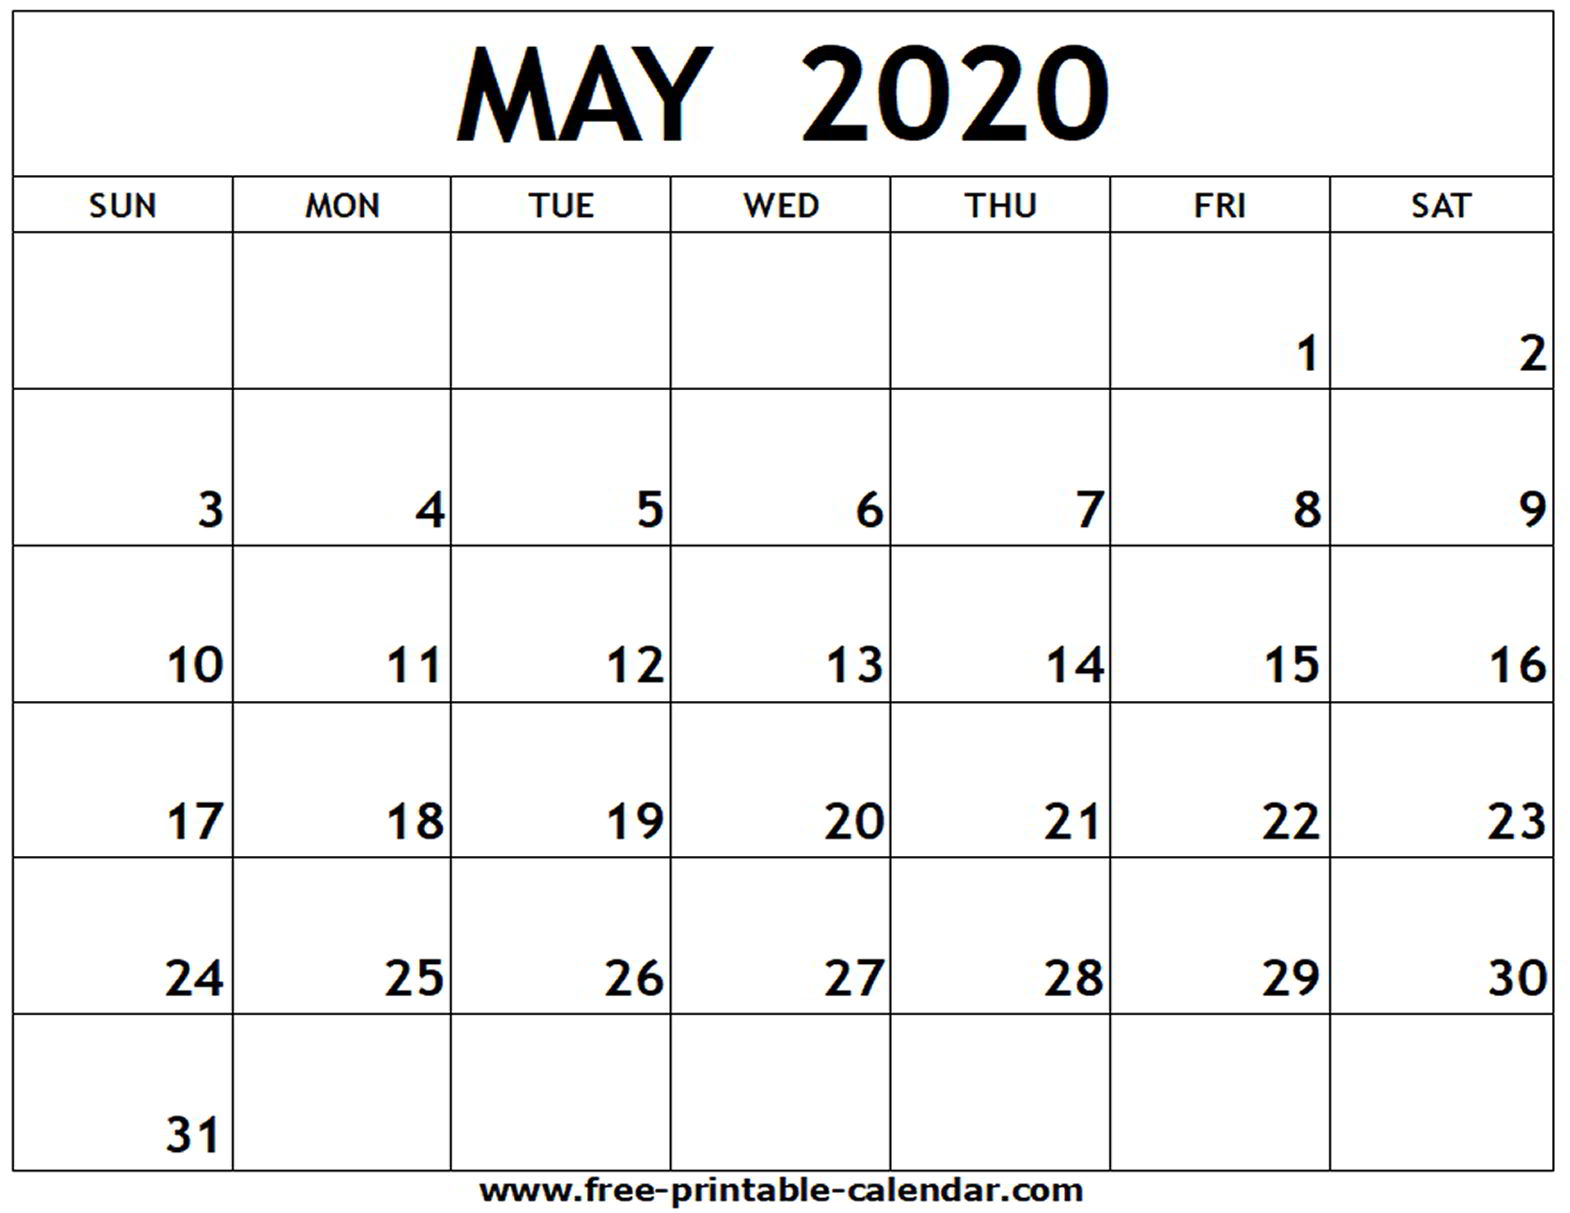 April May 2020 Calendar Printable - Wpa.wpart.co